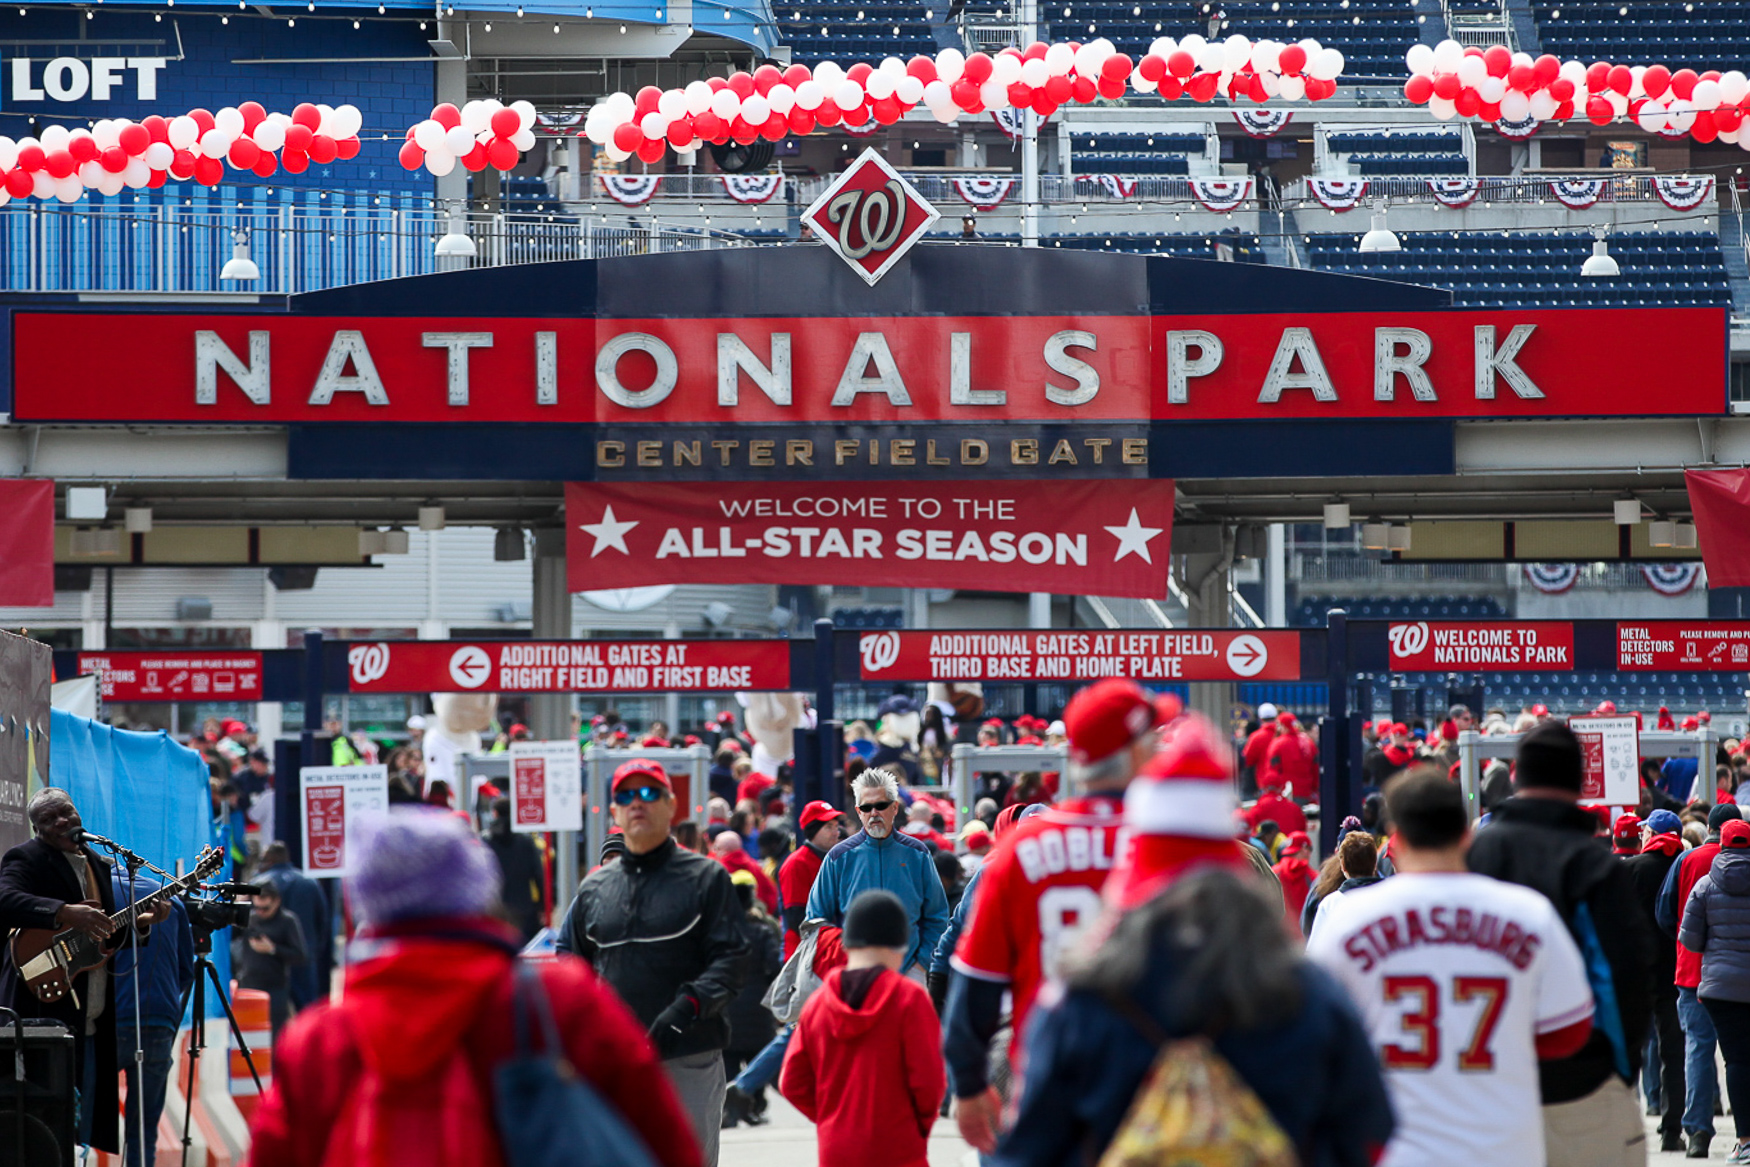 Baseball season starts next week and you can expect plenty of positive changes at Nats Park, including revamped food options, plenty of environmental initiatives and tons of community activities. (Amanda Andrade-Rhoades/DC Refined)